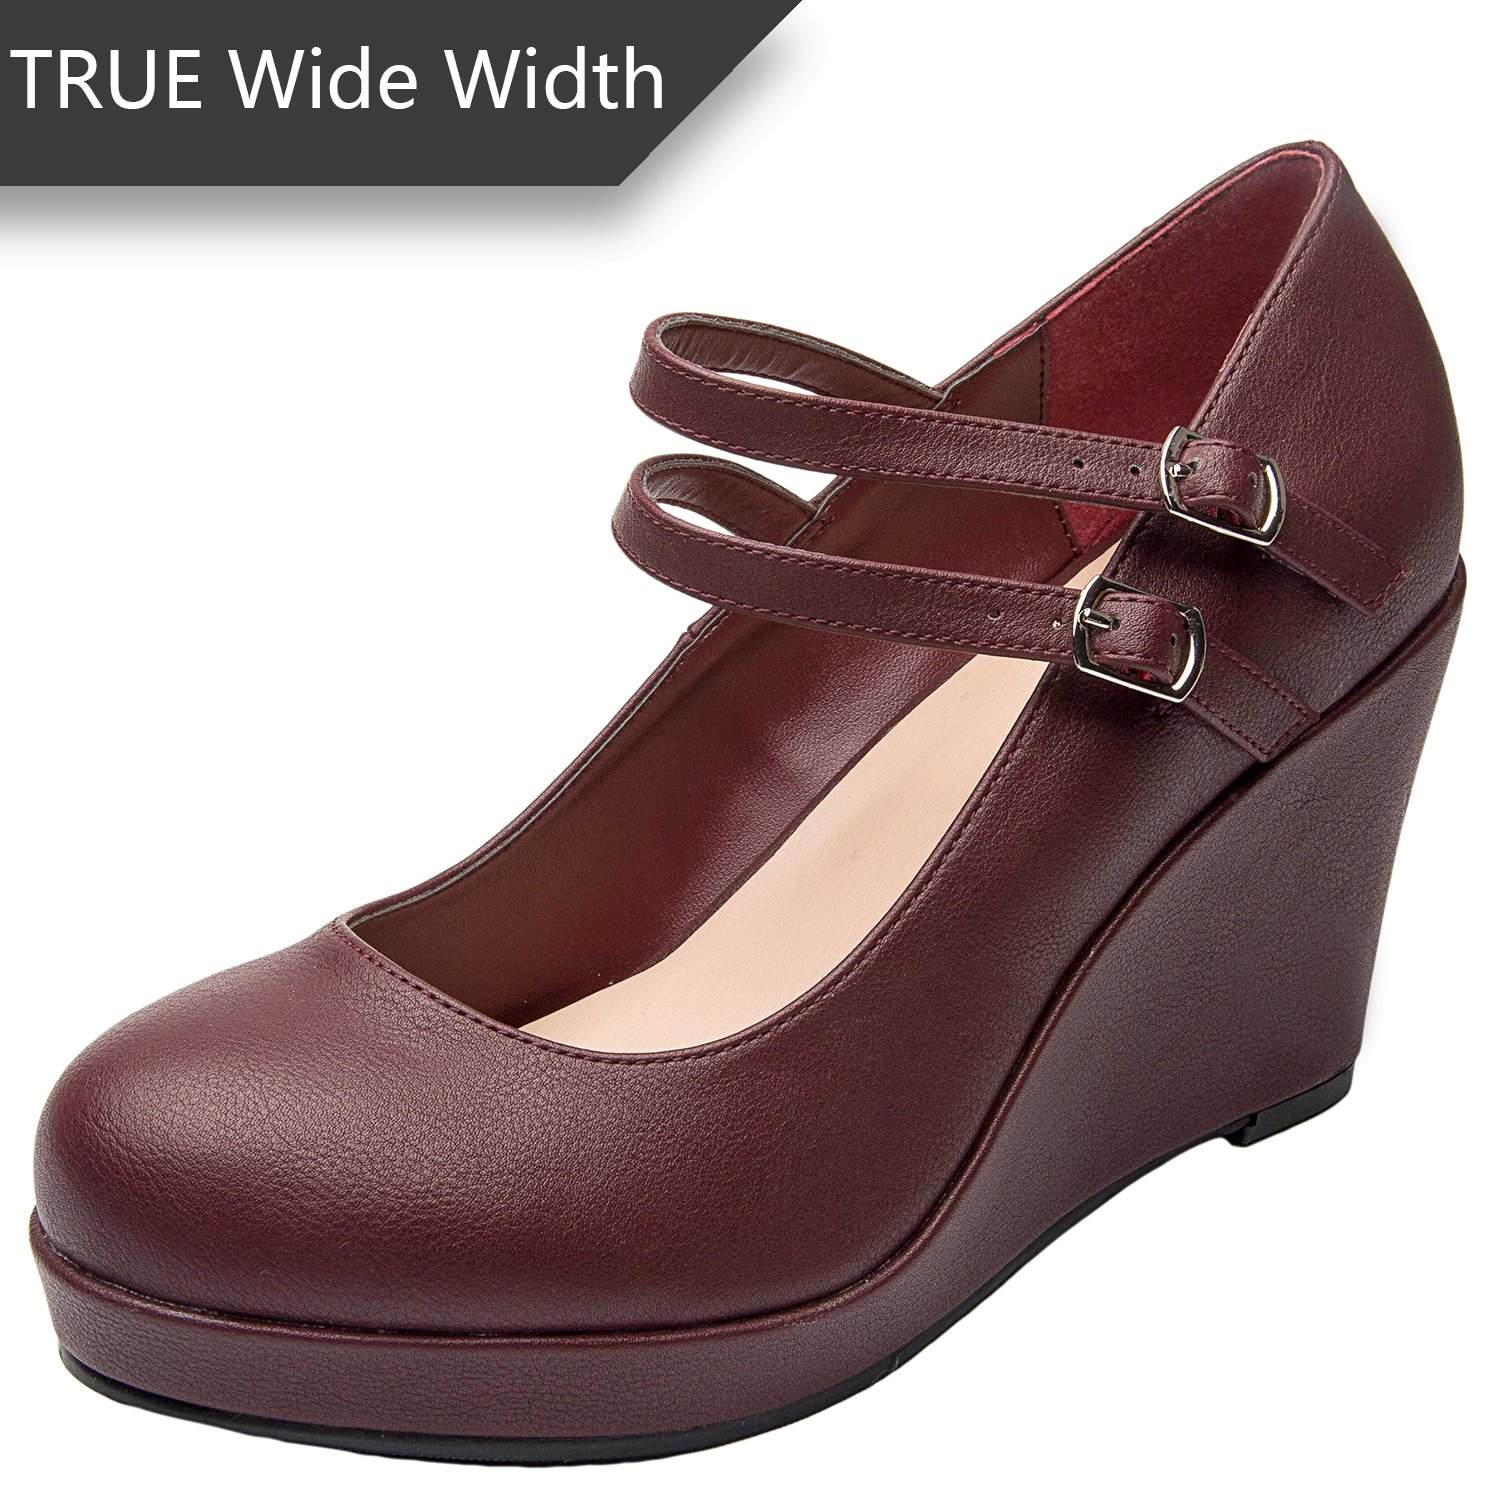 Luoika Women's Wide Width Wedge Shoes - Ankle Buckle Strap Round Closed Toe Mary Jane Shoes Heel Pump(Burgundy 180318,12WW)